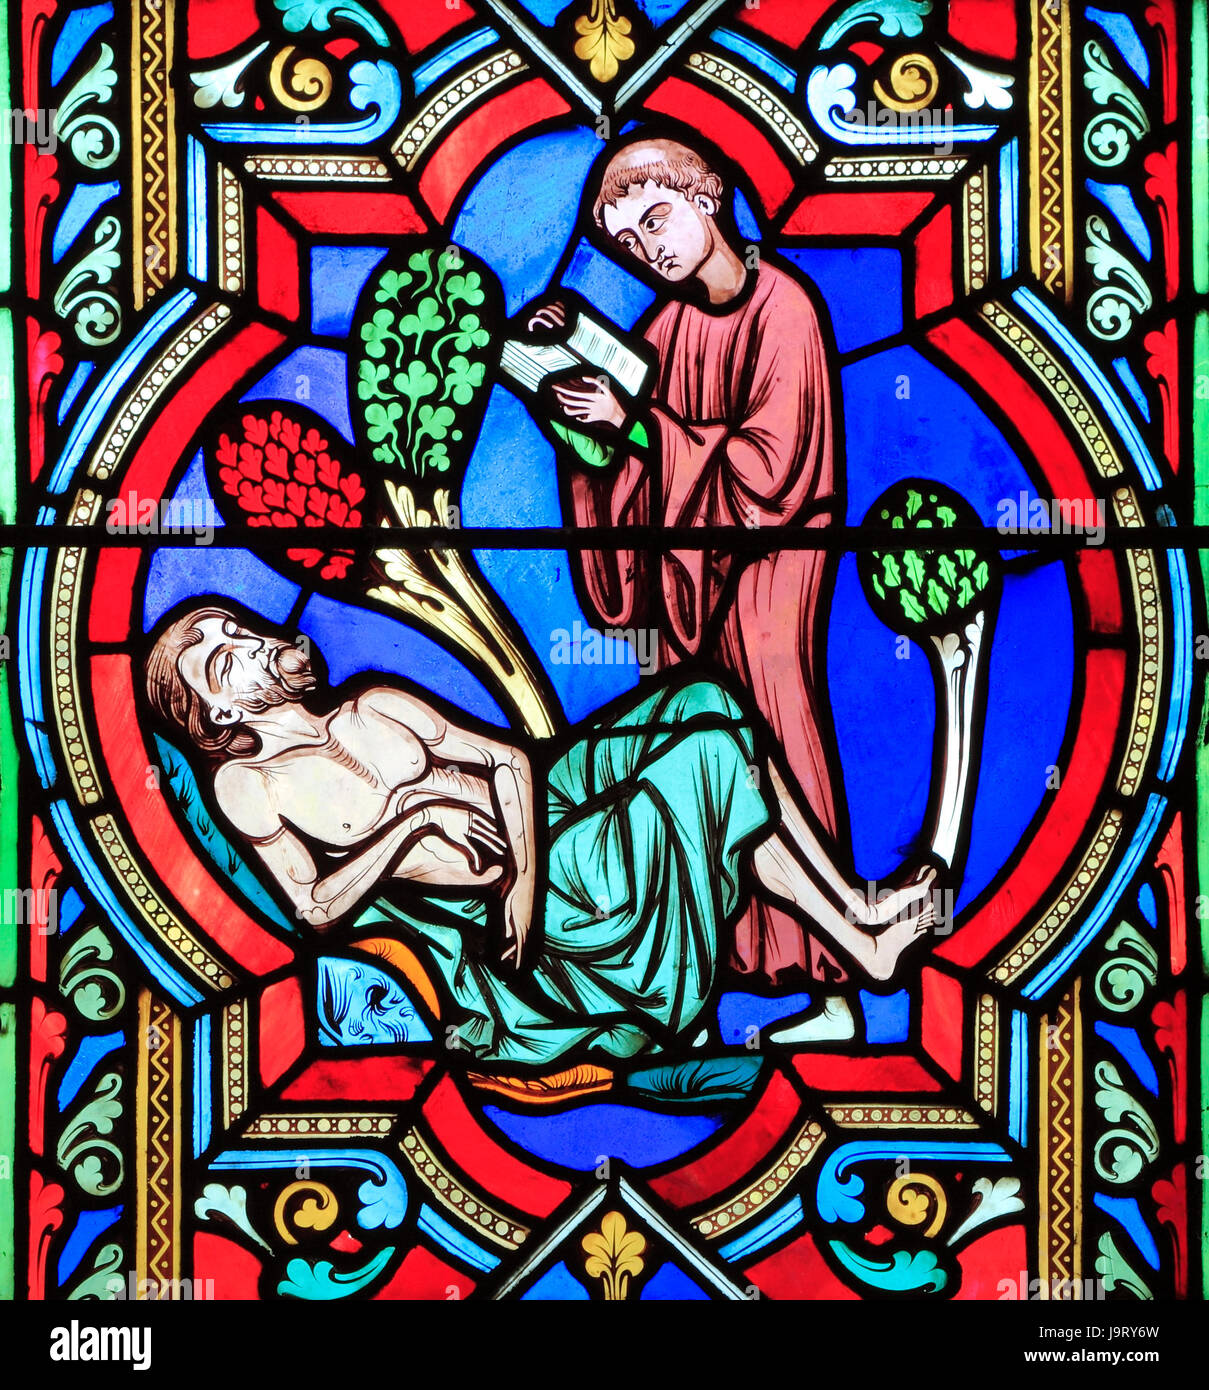 The Good Samaritan Parable, a Levite 'passes by on the other side', ignoring dying traveller, by Oudinot - Stock Image